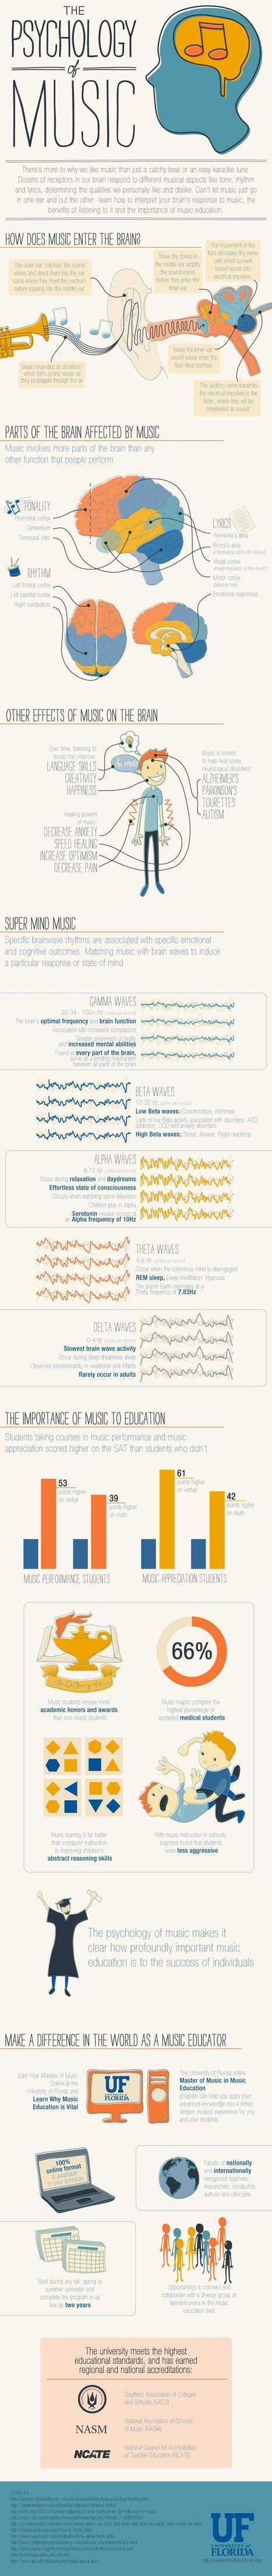 This Is Your Brain On Music [Infographic] | Behind the Music | Scoop.it